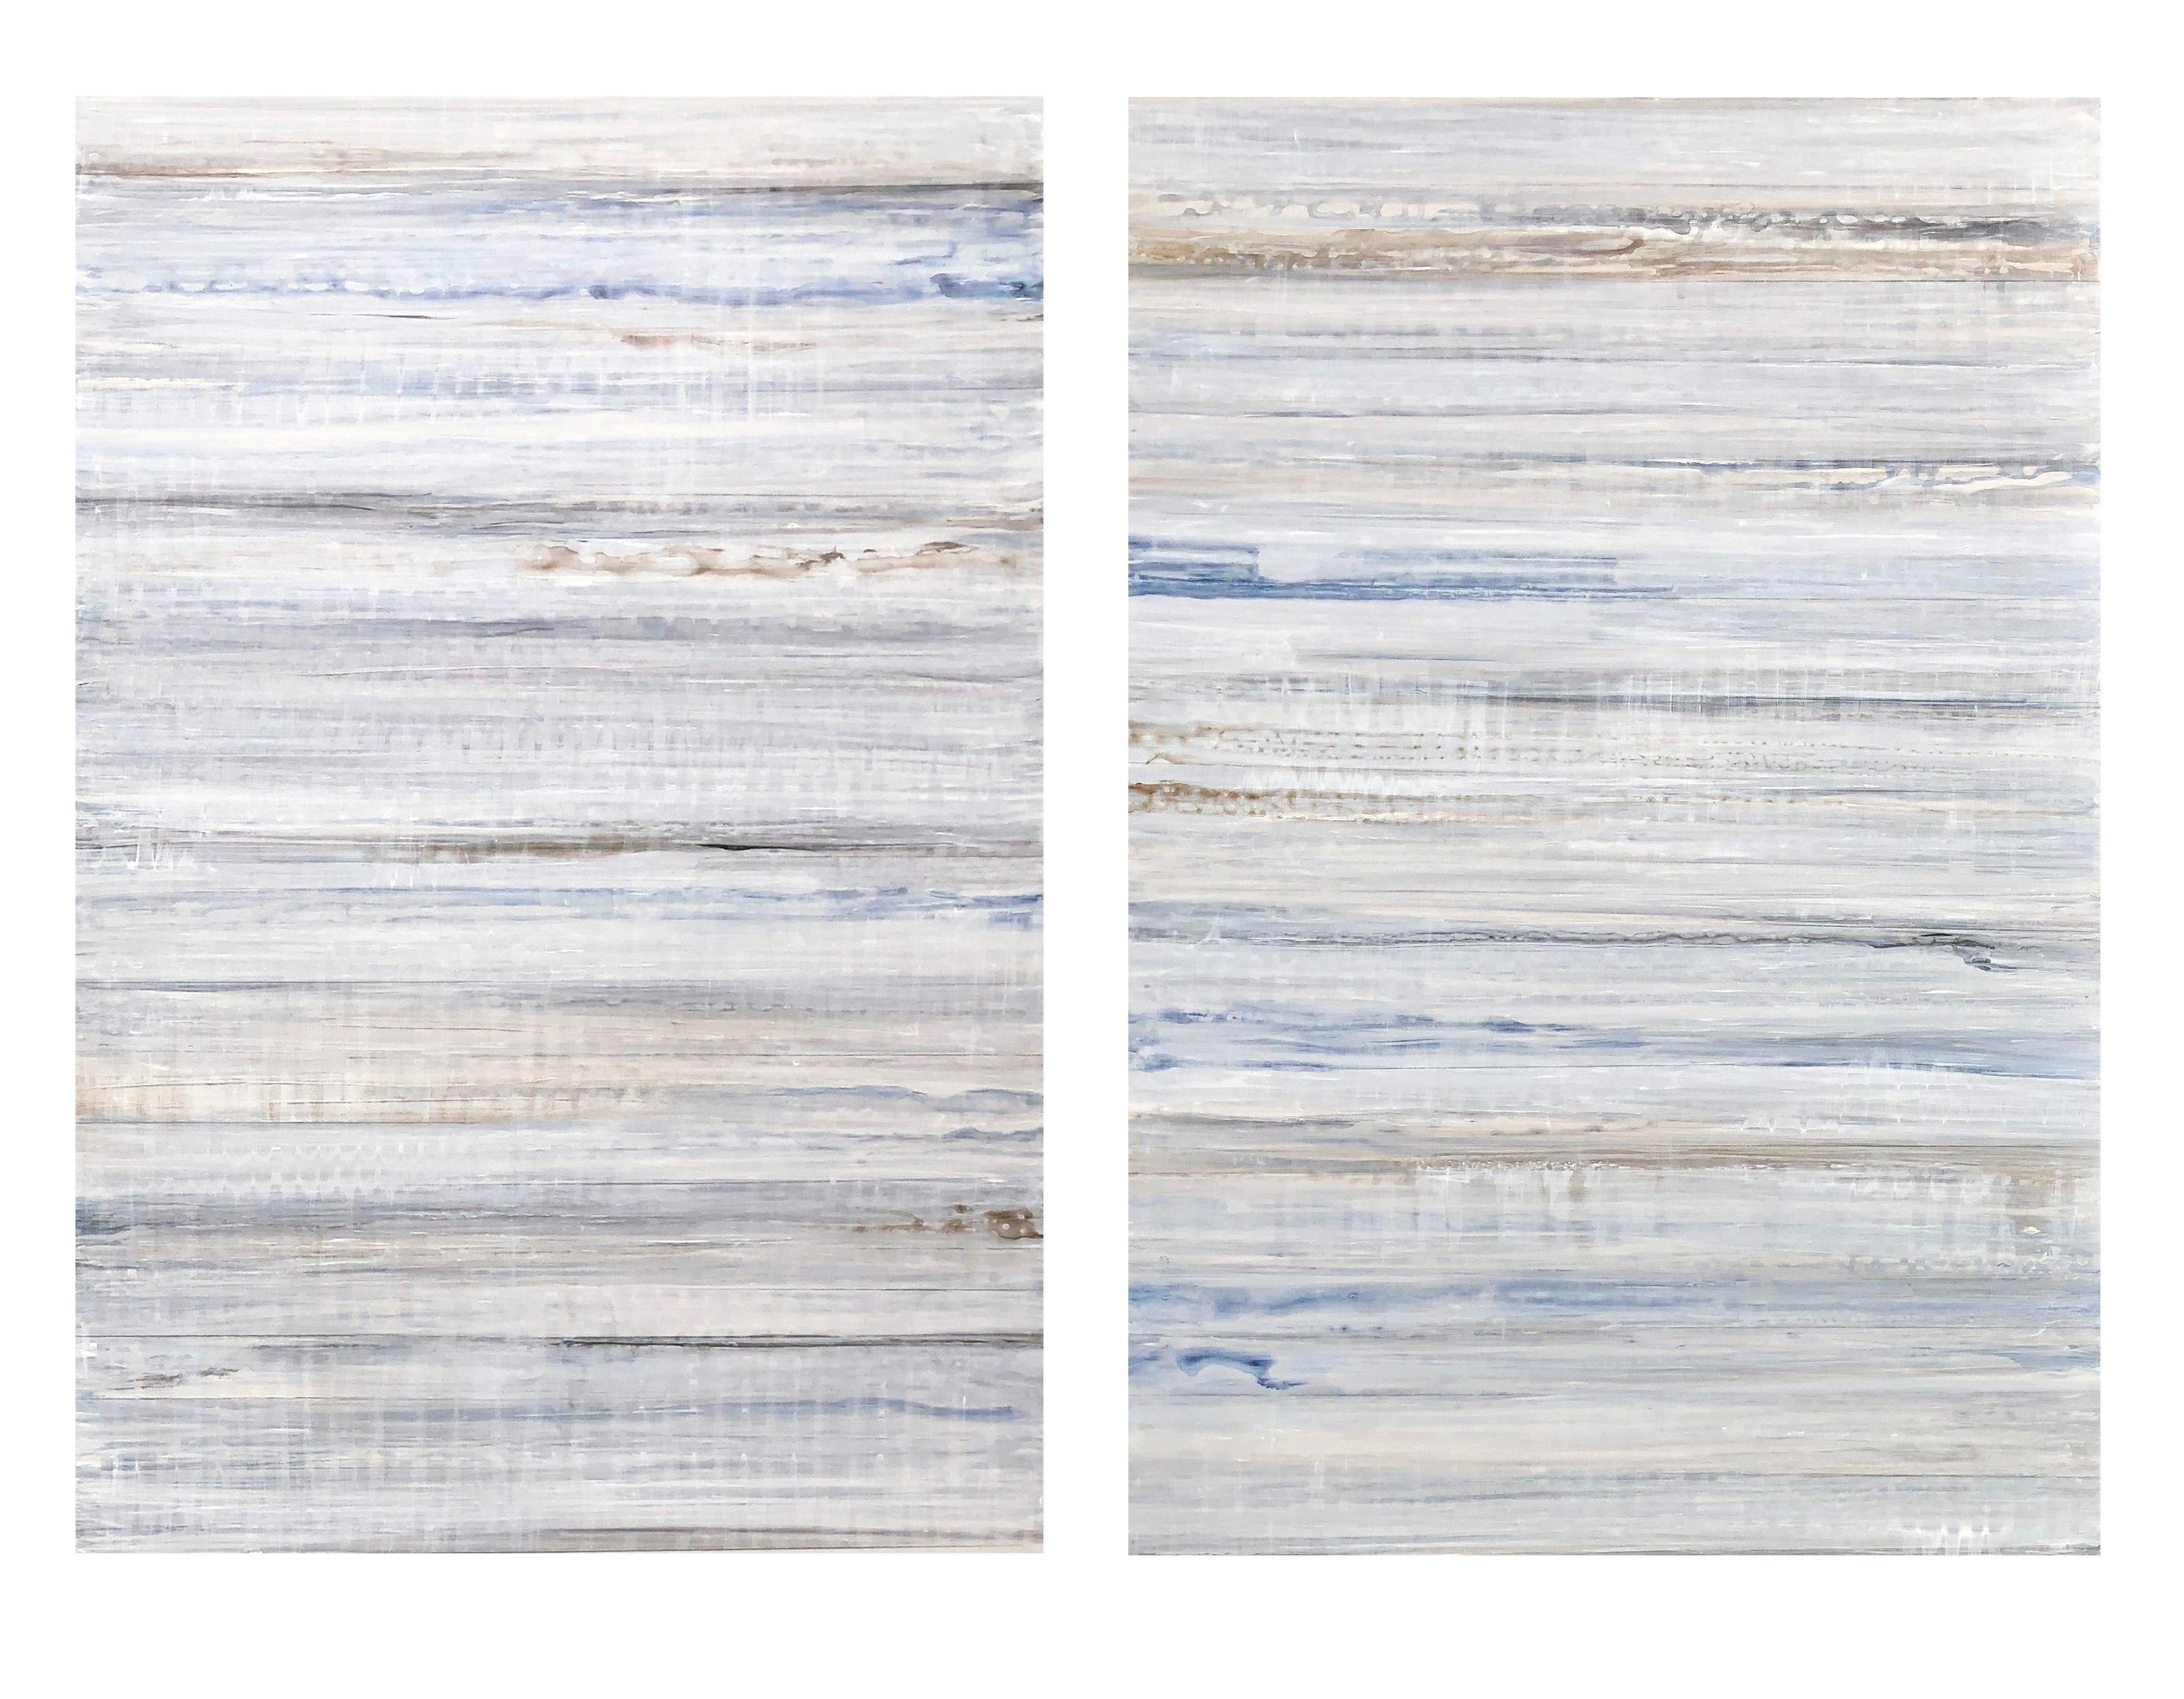 Minimalist Abstract Color Field Painting in Light Blue & White (C19-3)